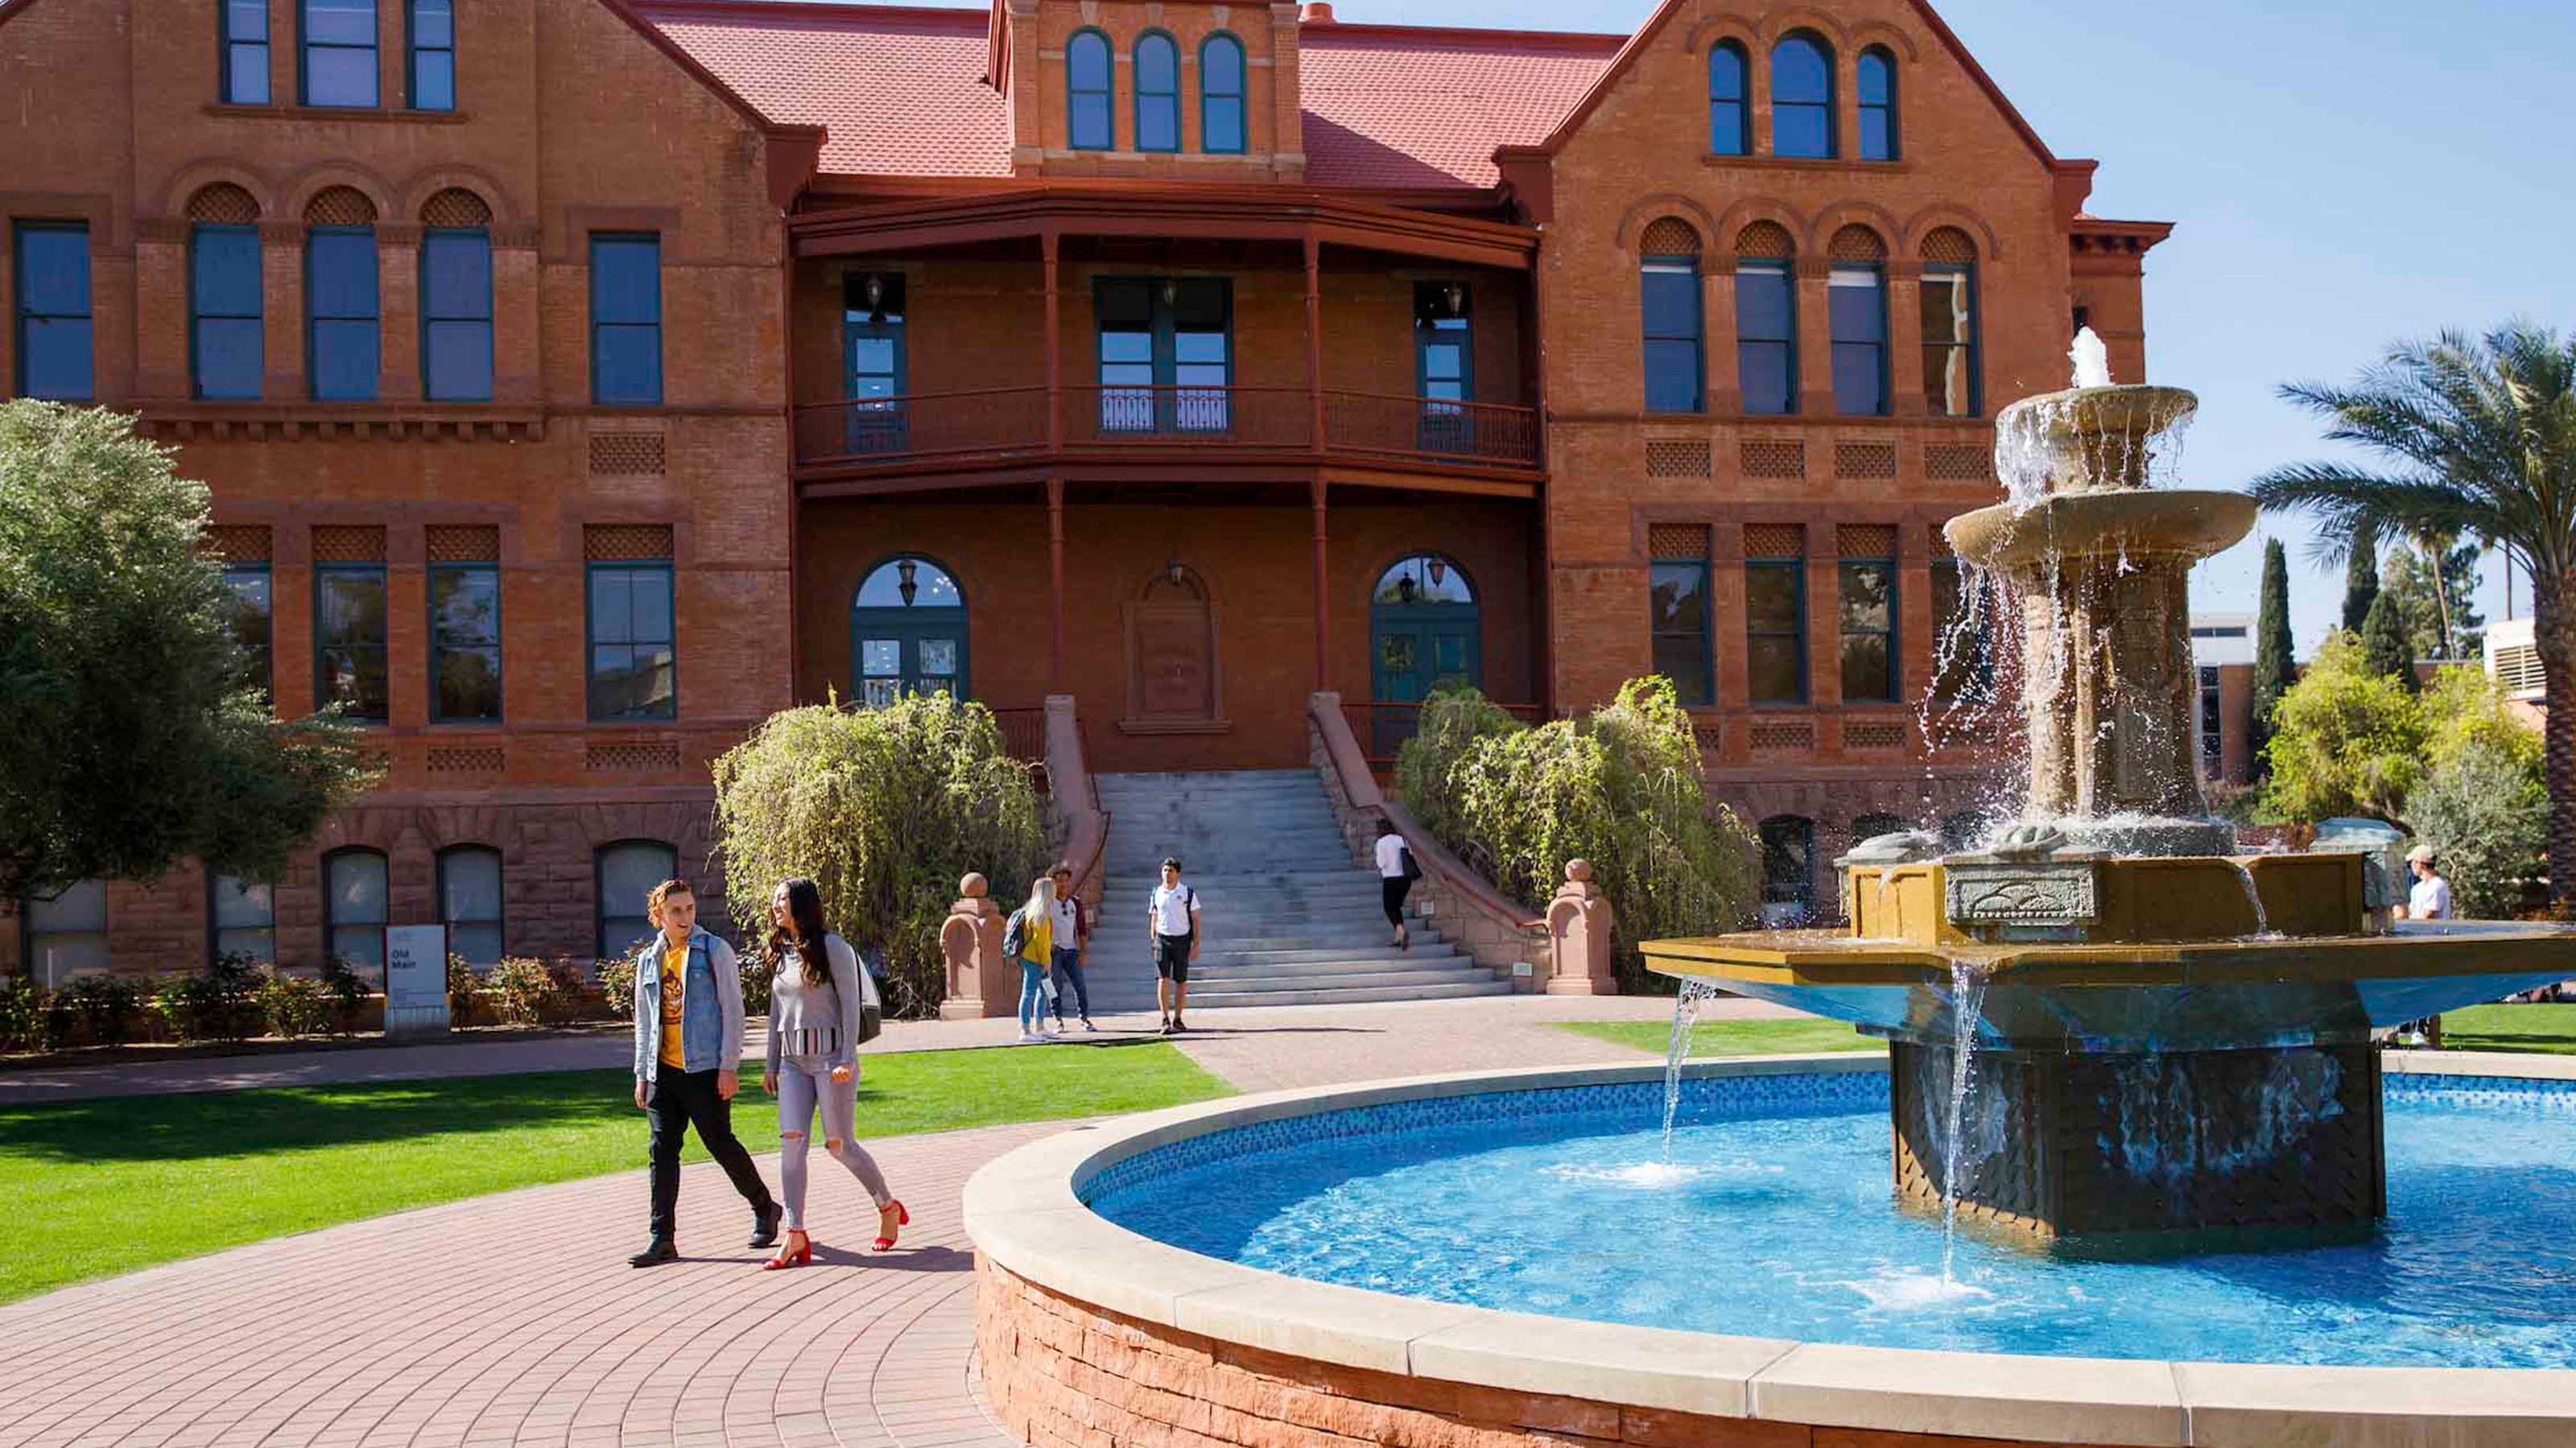 View of students walking in front of ASU's iconic first building, Old Main